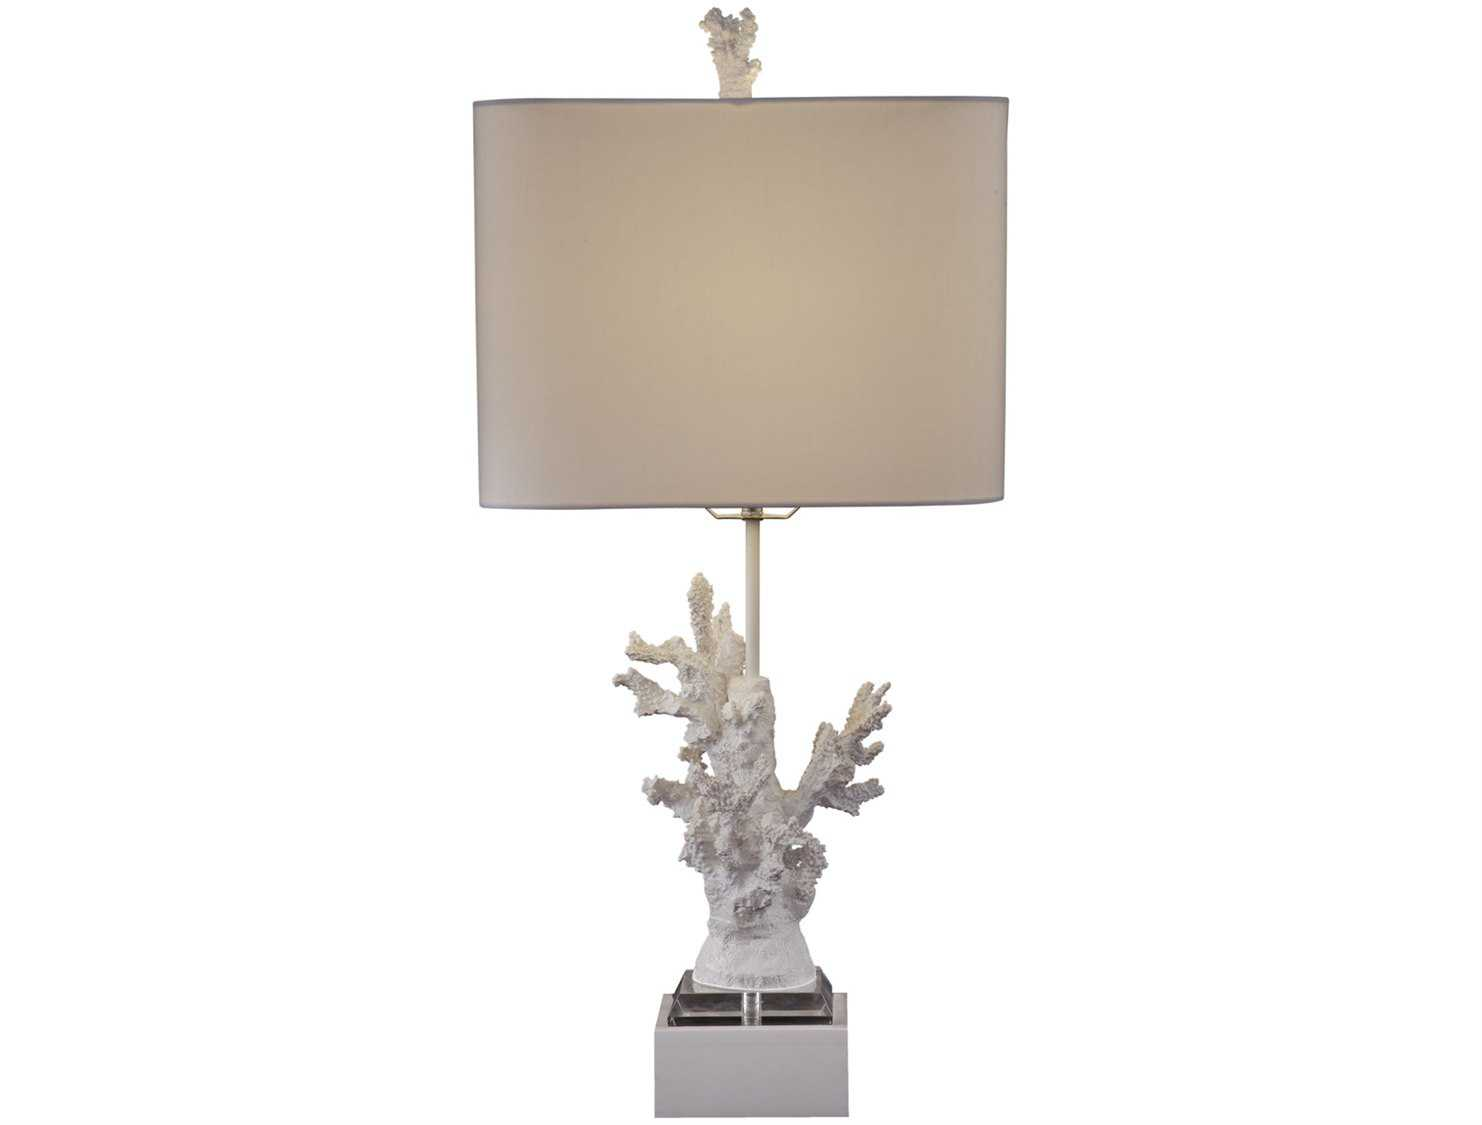 bassett mirror white coral high gloss white table lamp bal2667tec. Black Bedroom Furniture Sets. Home Design Ideas